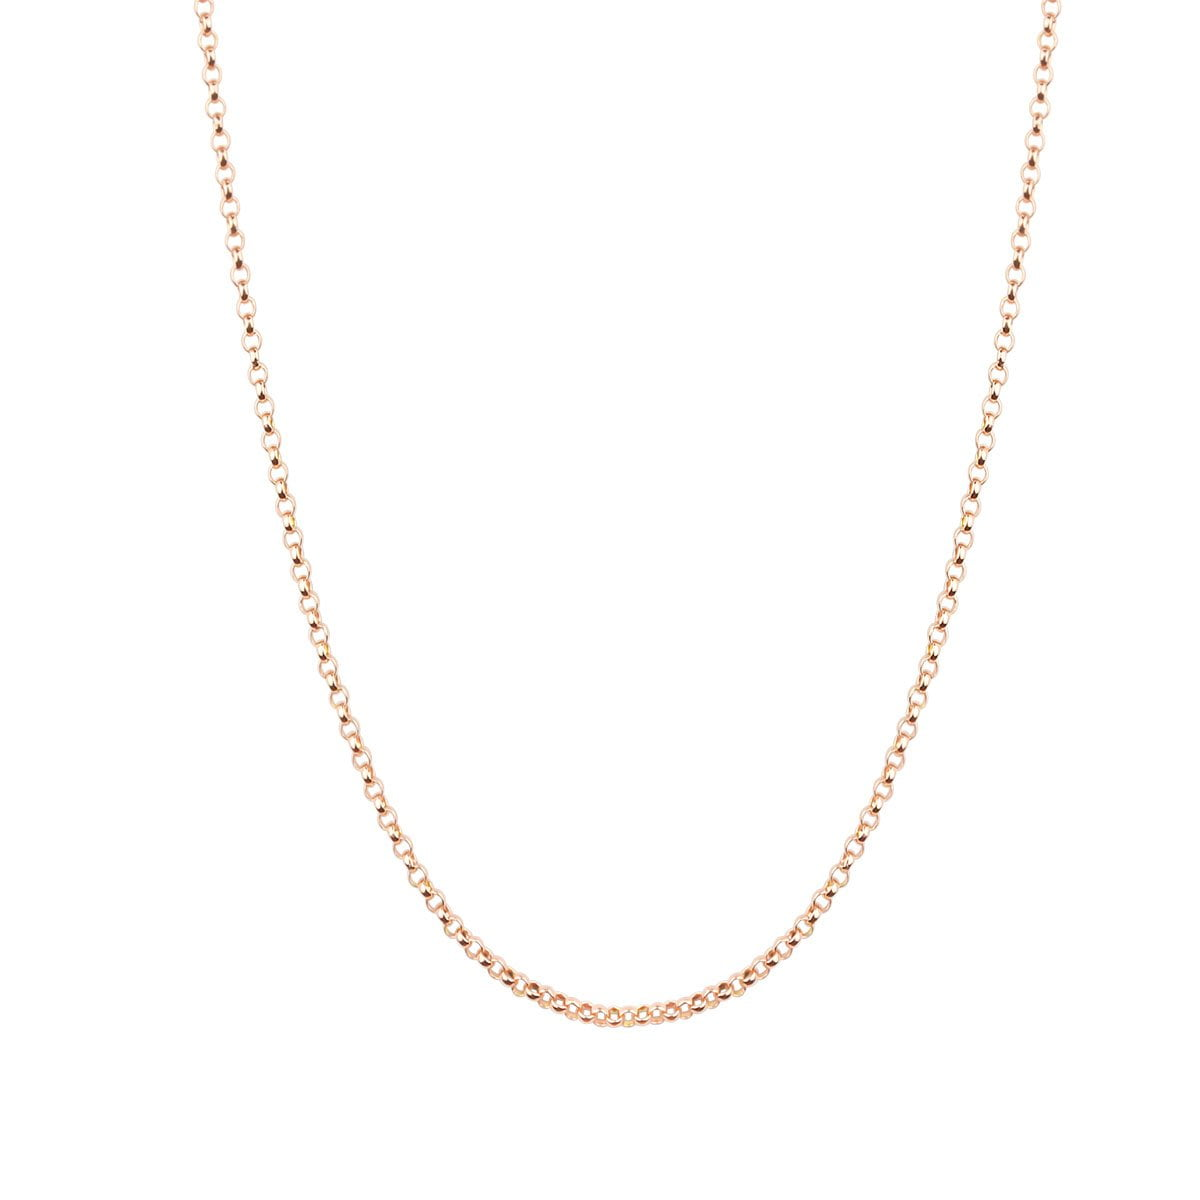 Noemi 18ct Rose Gold Belcher Chain Necklace